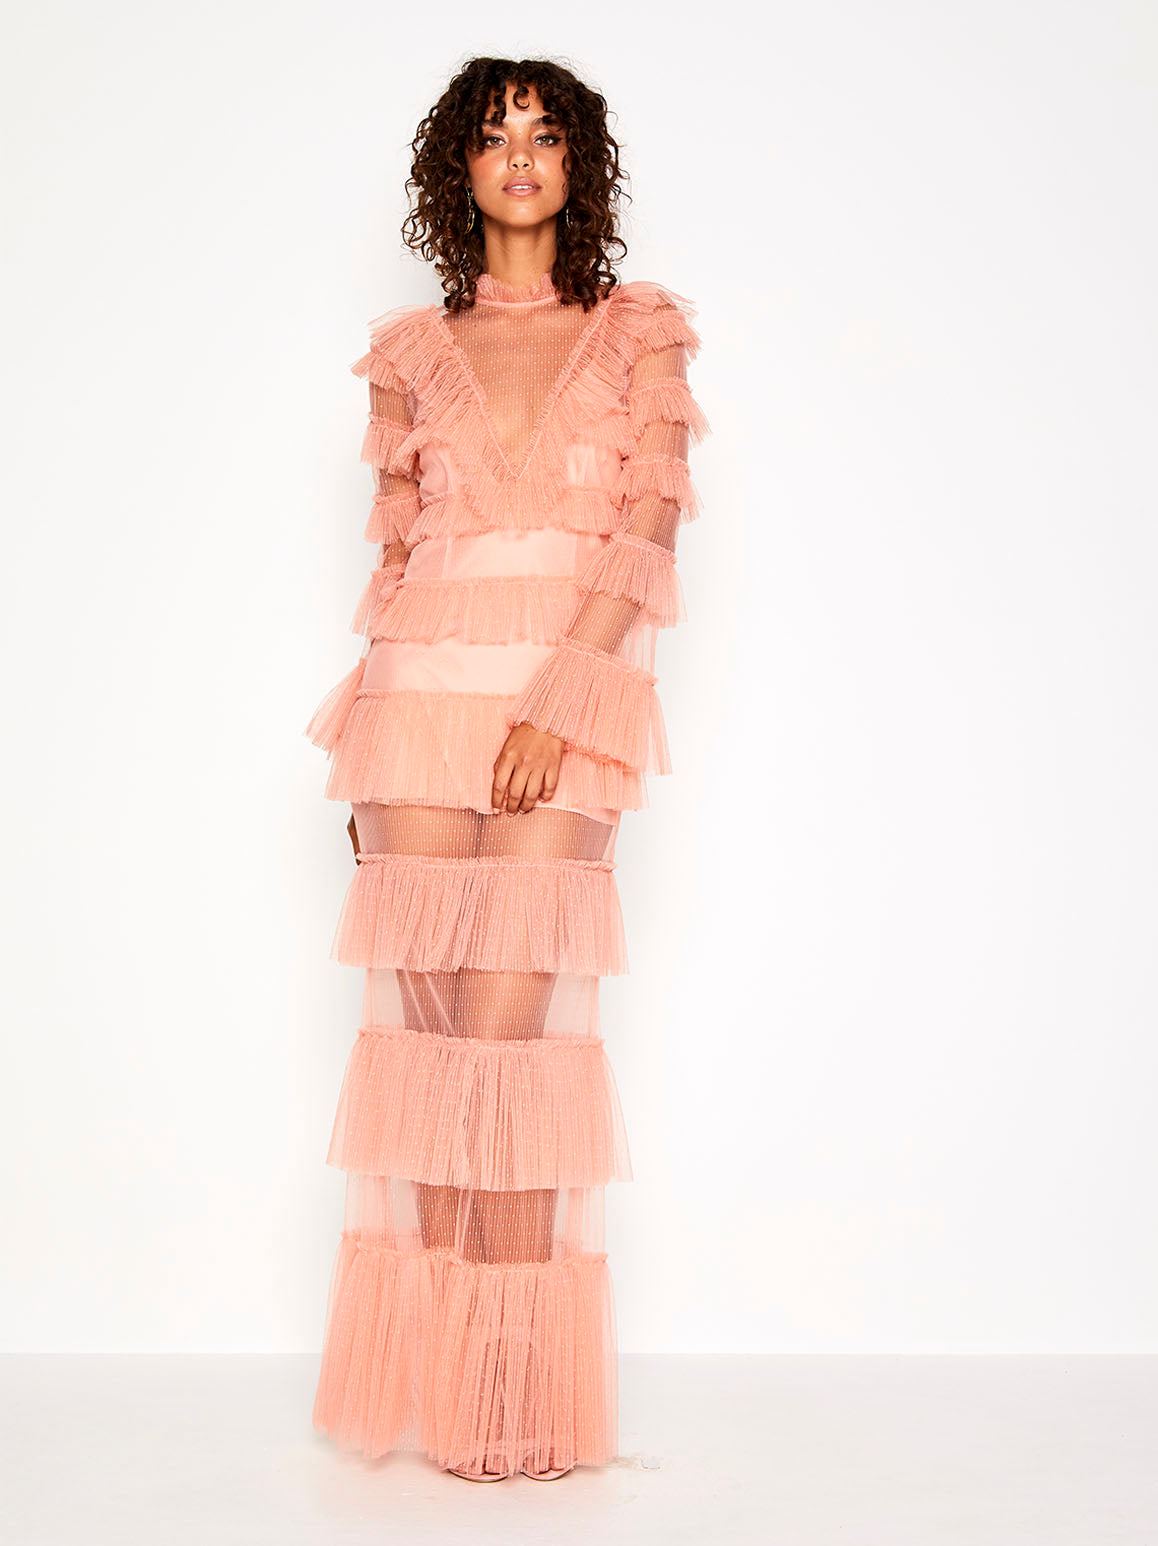 Say Yes Dress Alice Mccall